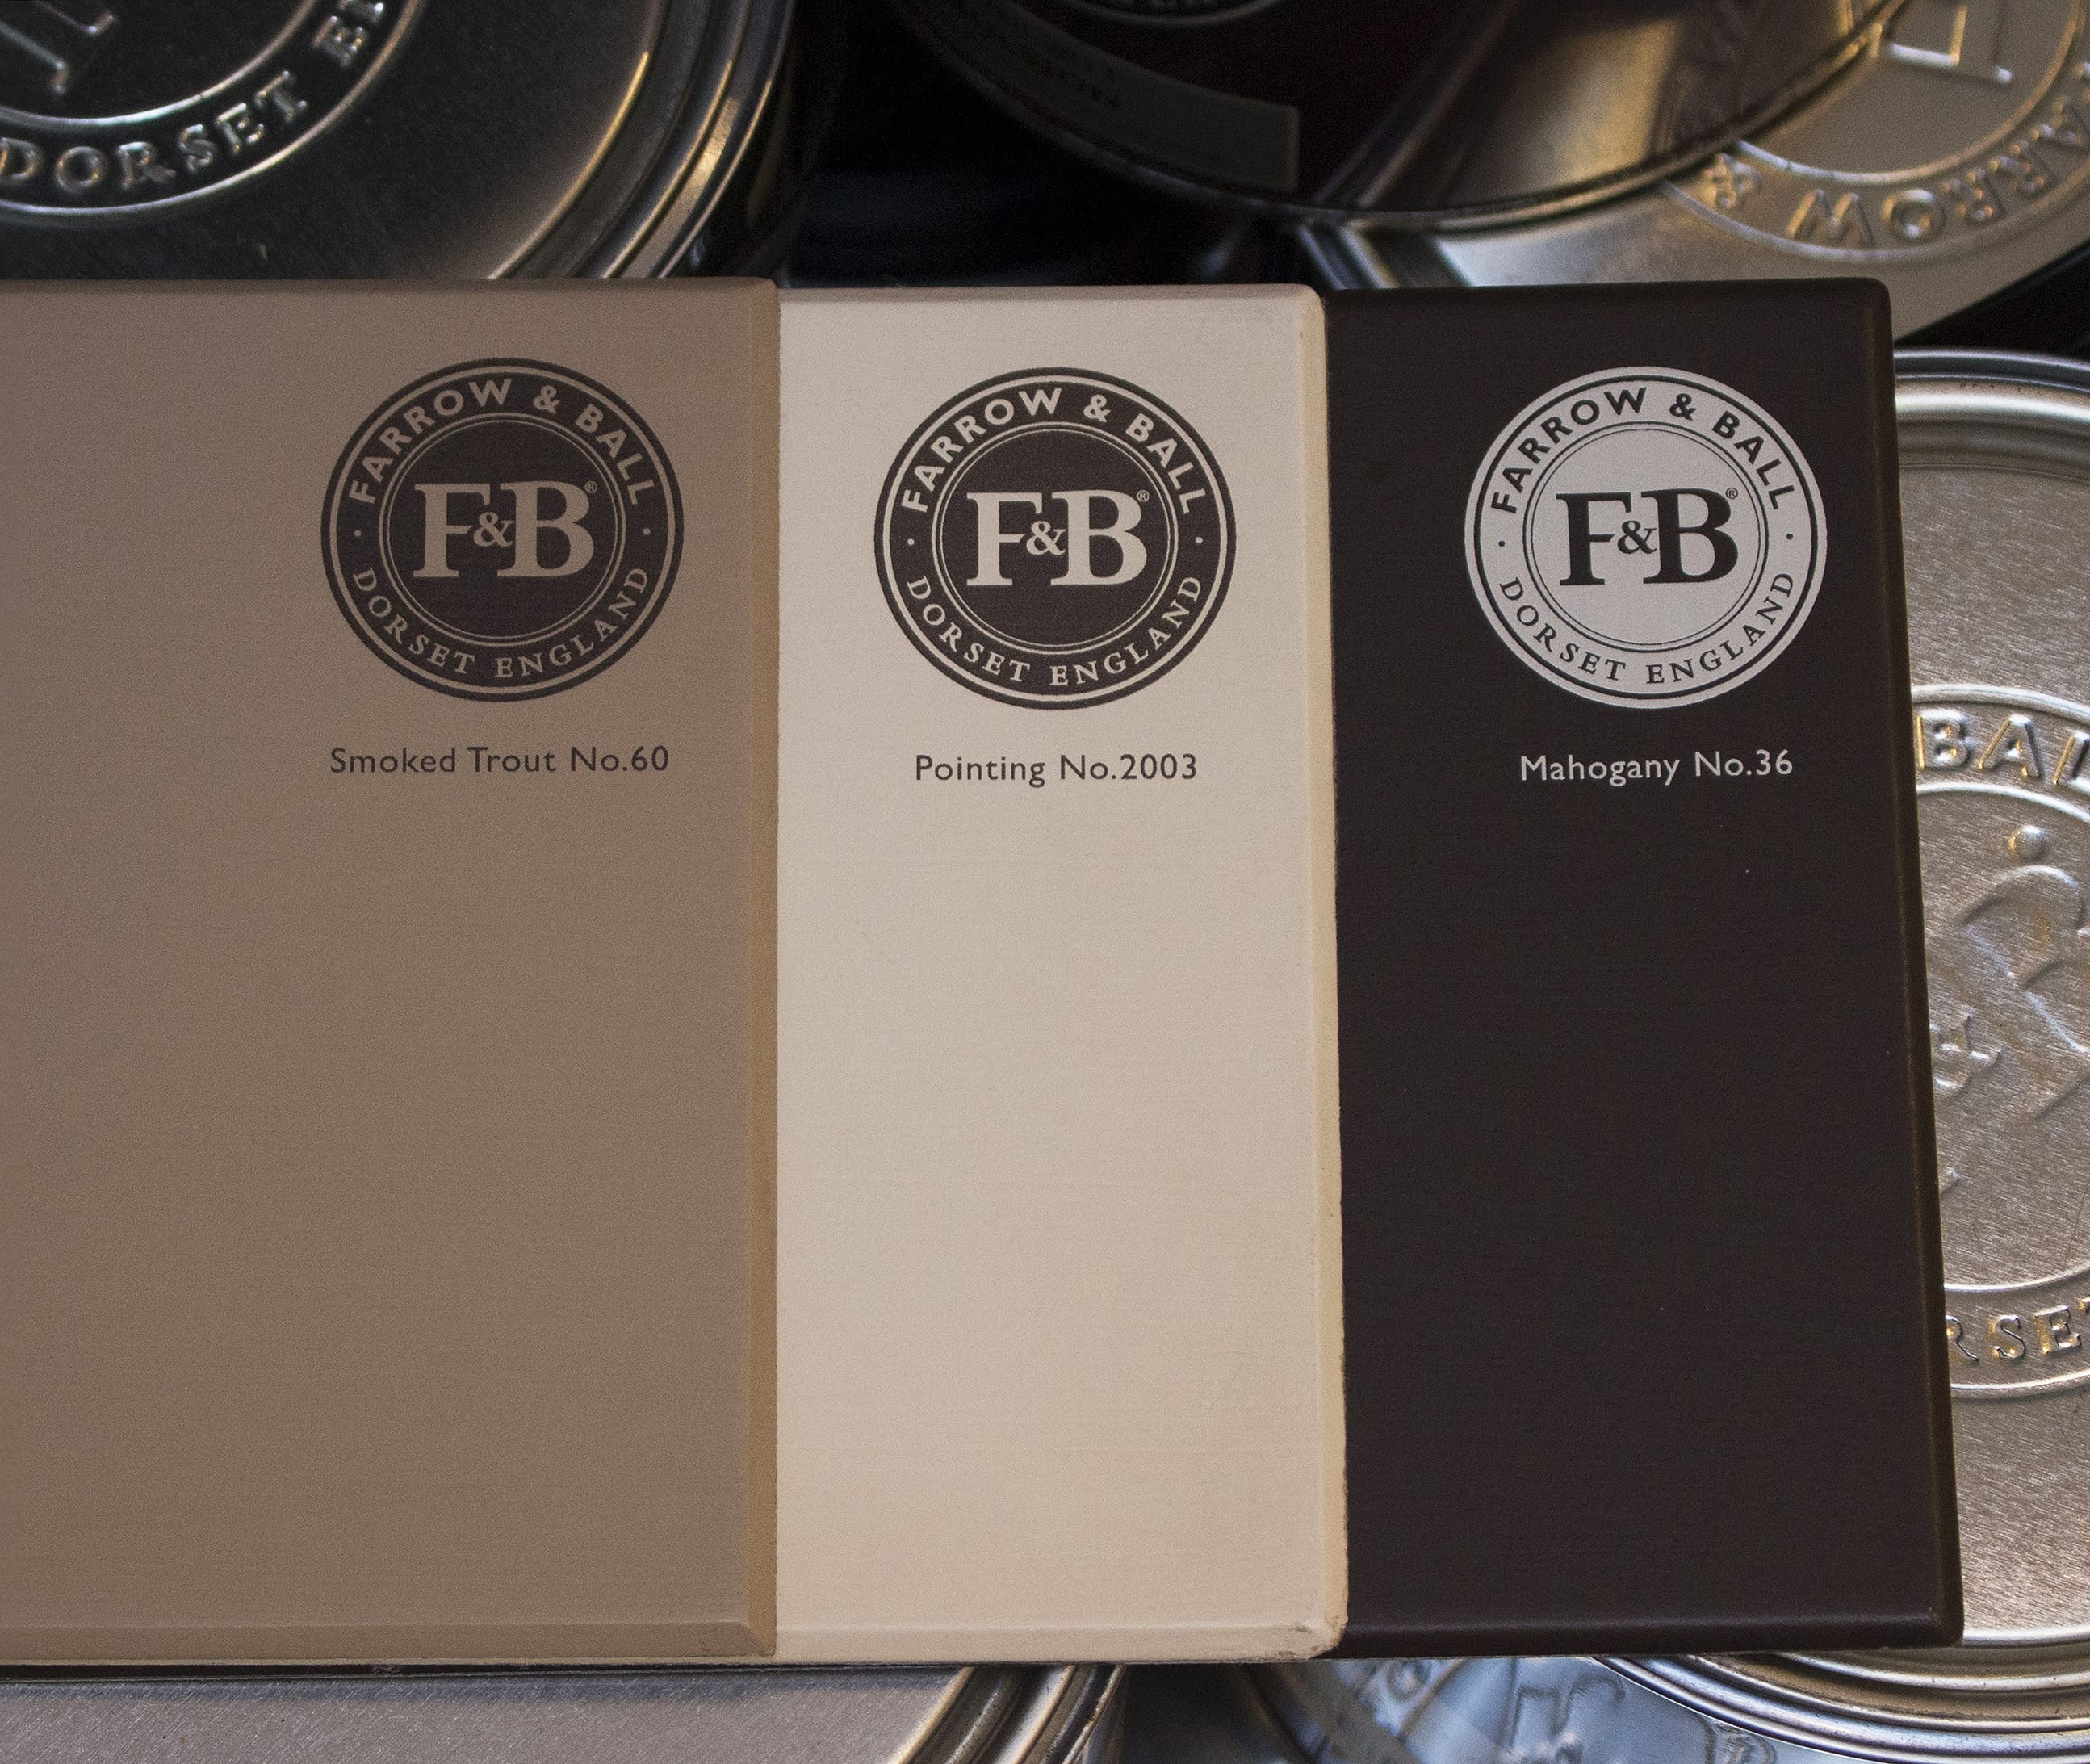 farrow&ball, farrow and ball, paint, decorating, paint brush, pointing